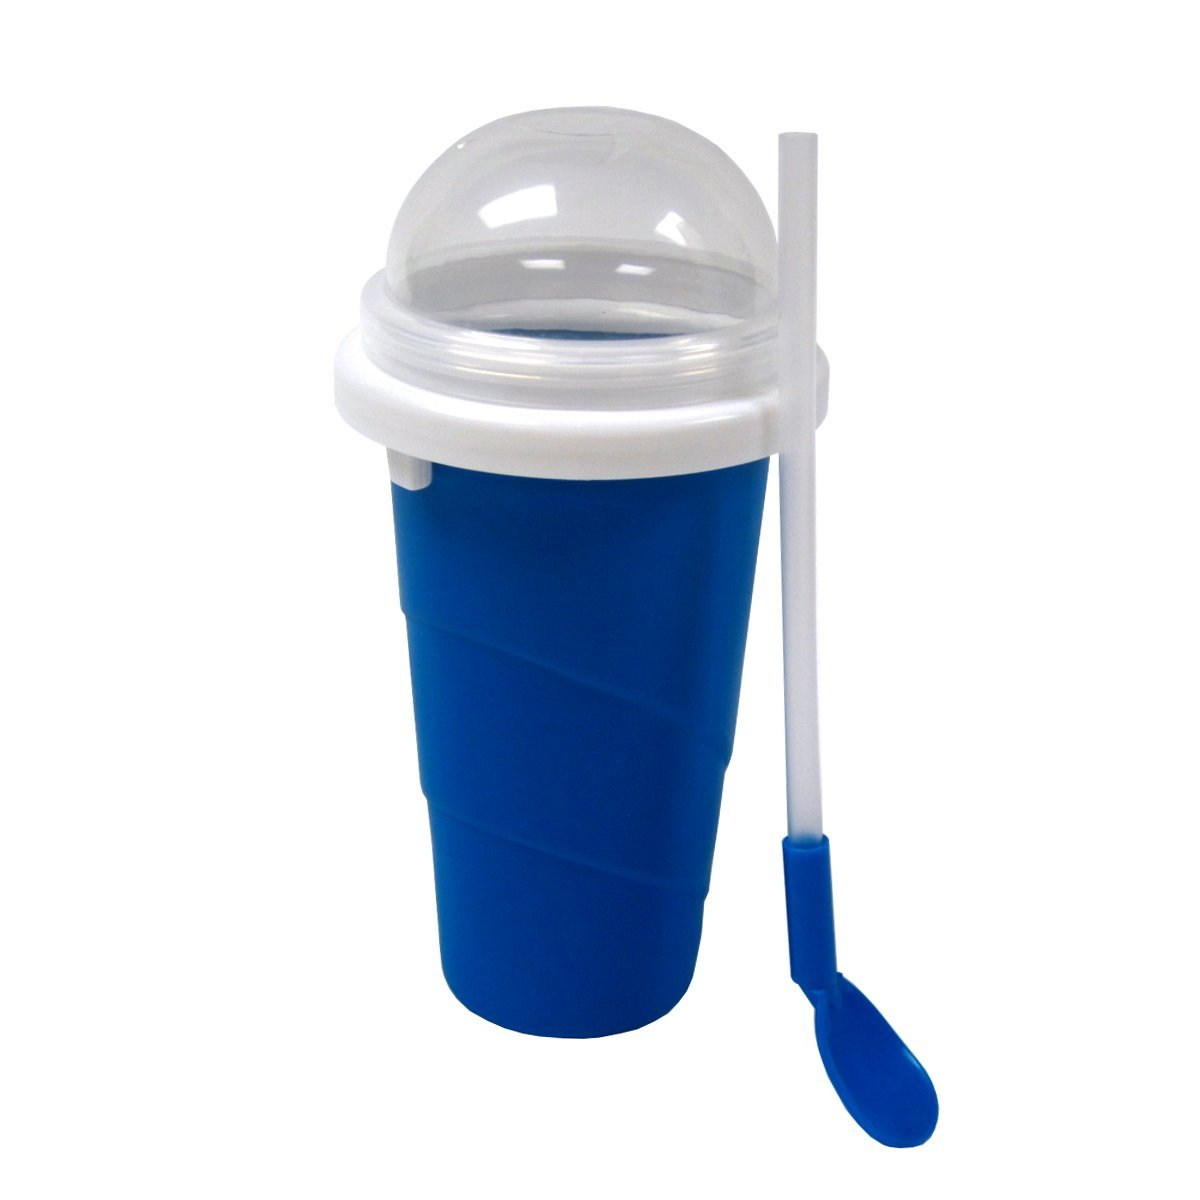 Squeezy Freezy Makes Homemade Slushies In Minutes